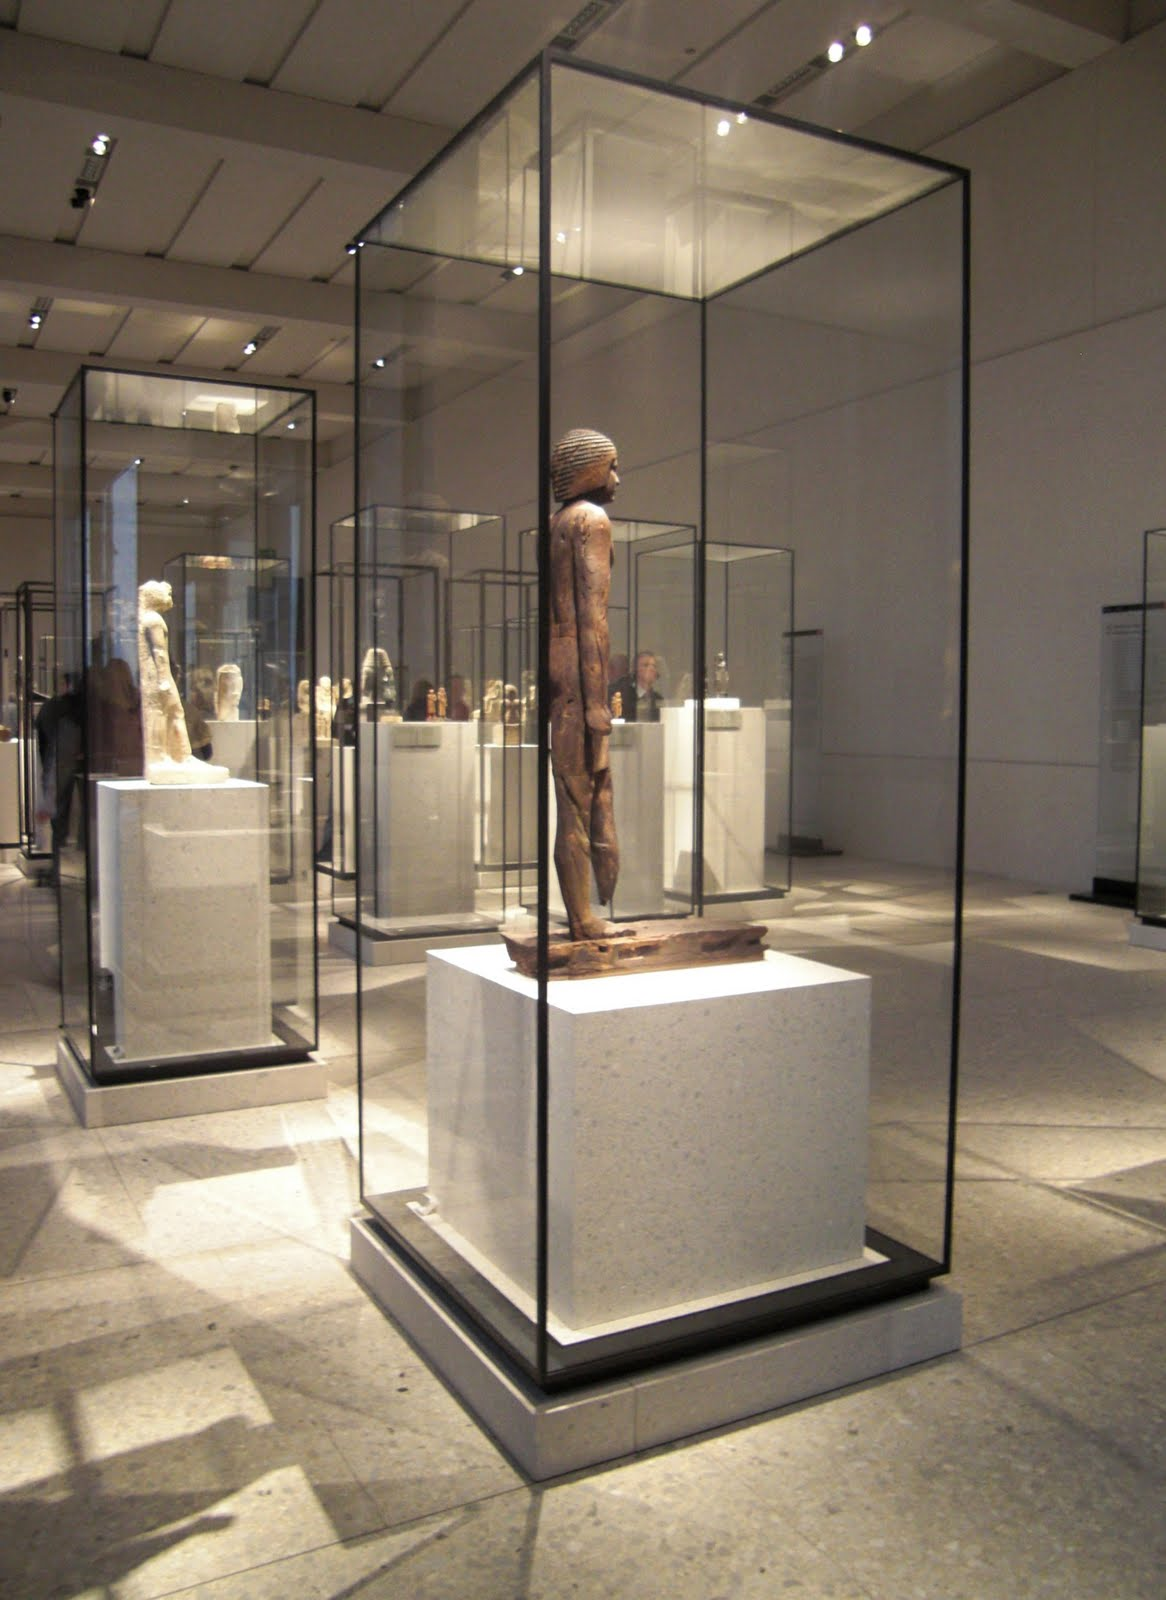 Ma Isd Charlotte Storrar Visit To The Neues Museum